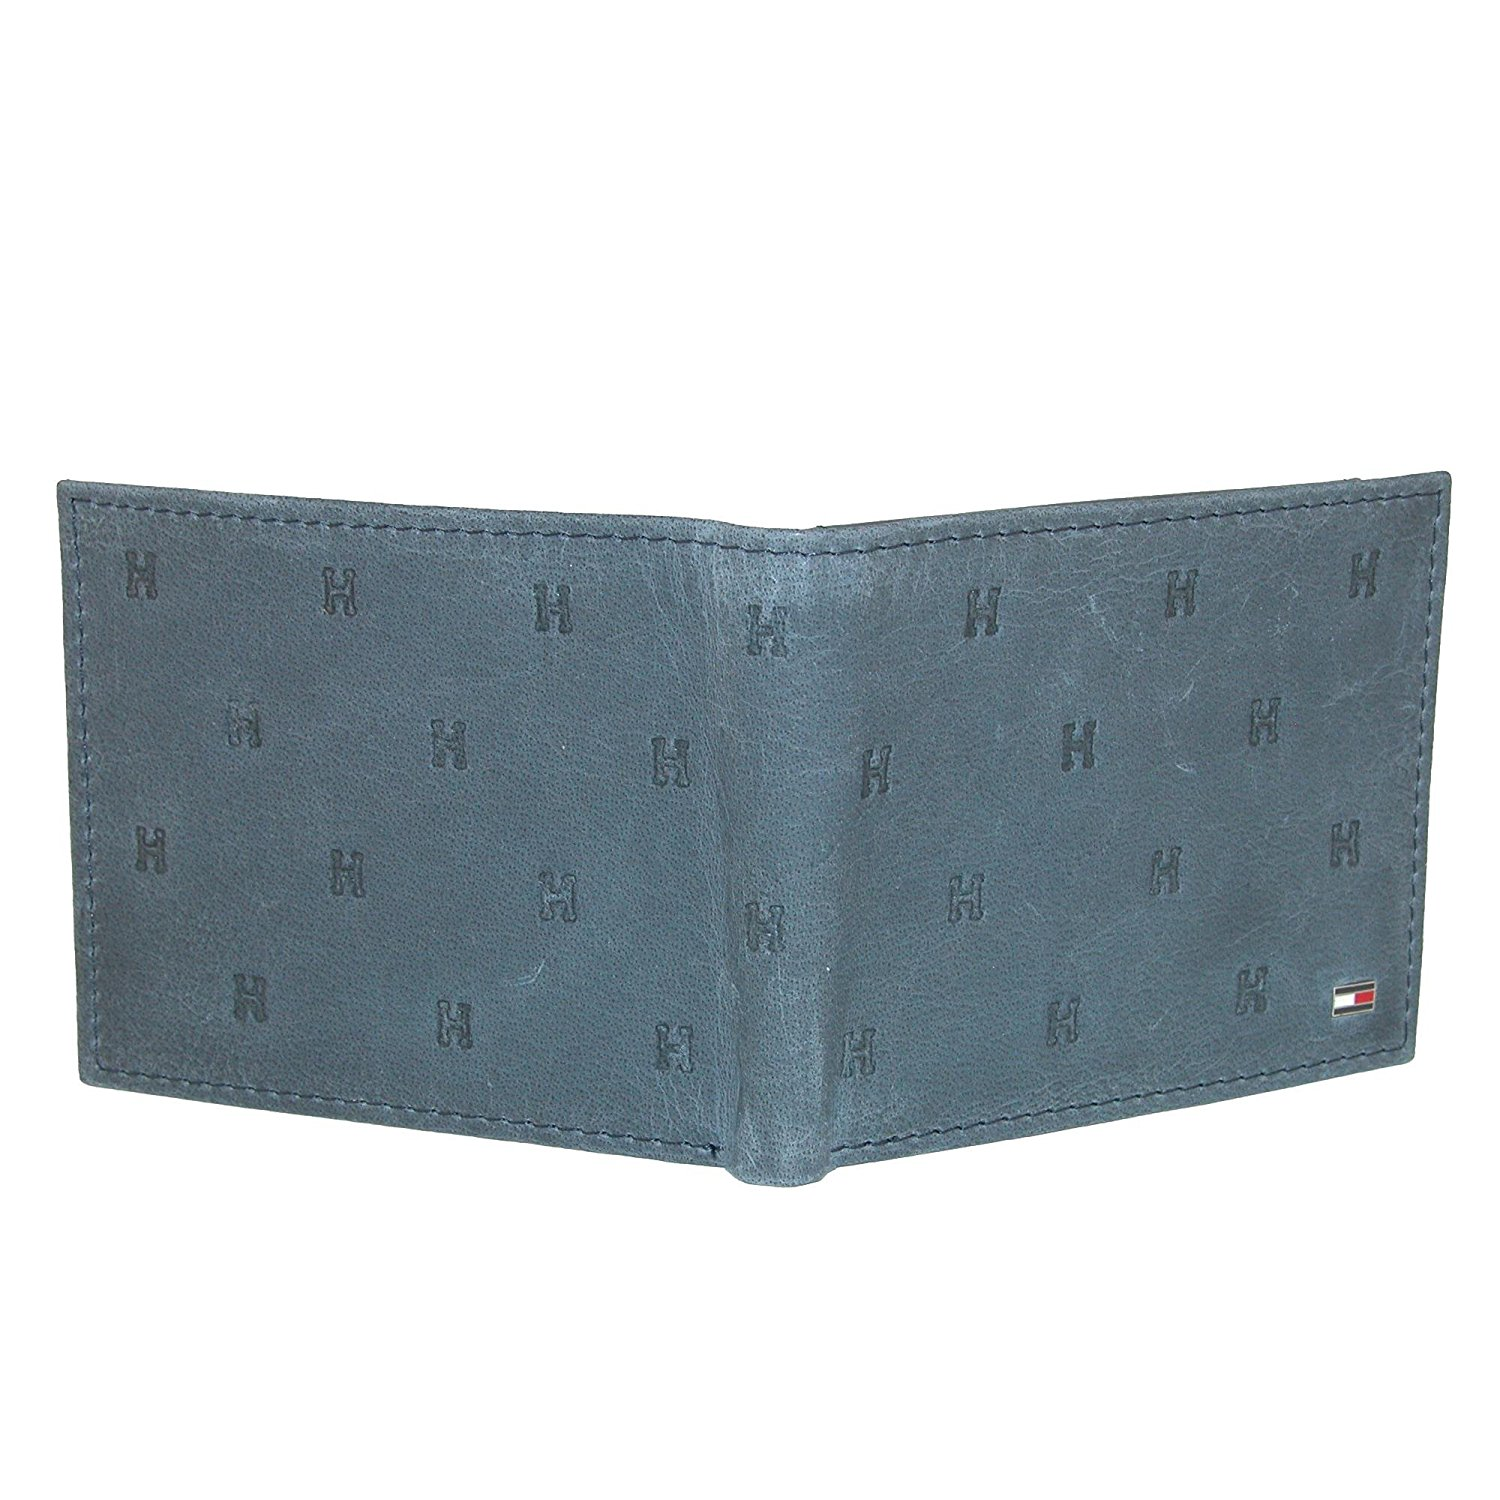 Tommy-Hilfiger-Men-039-s-Leather-Vaughn-Embossed-Bifold-Wallet thumbnail 9